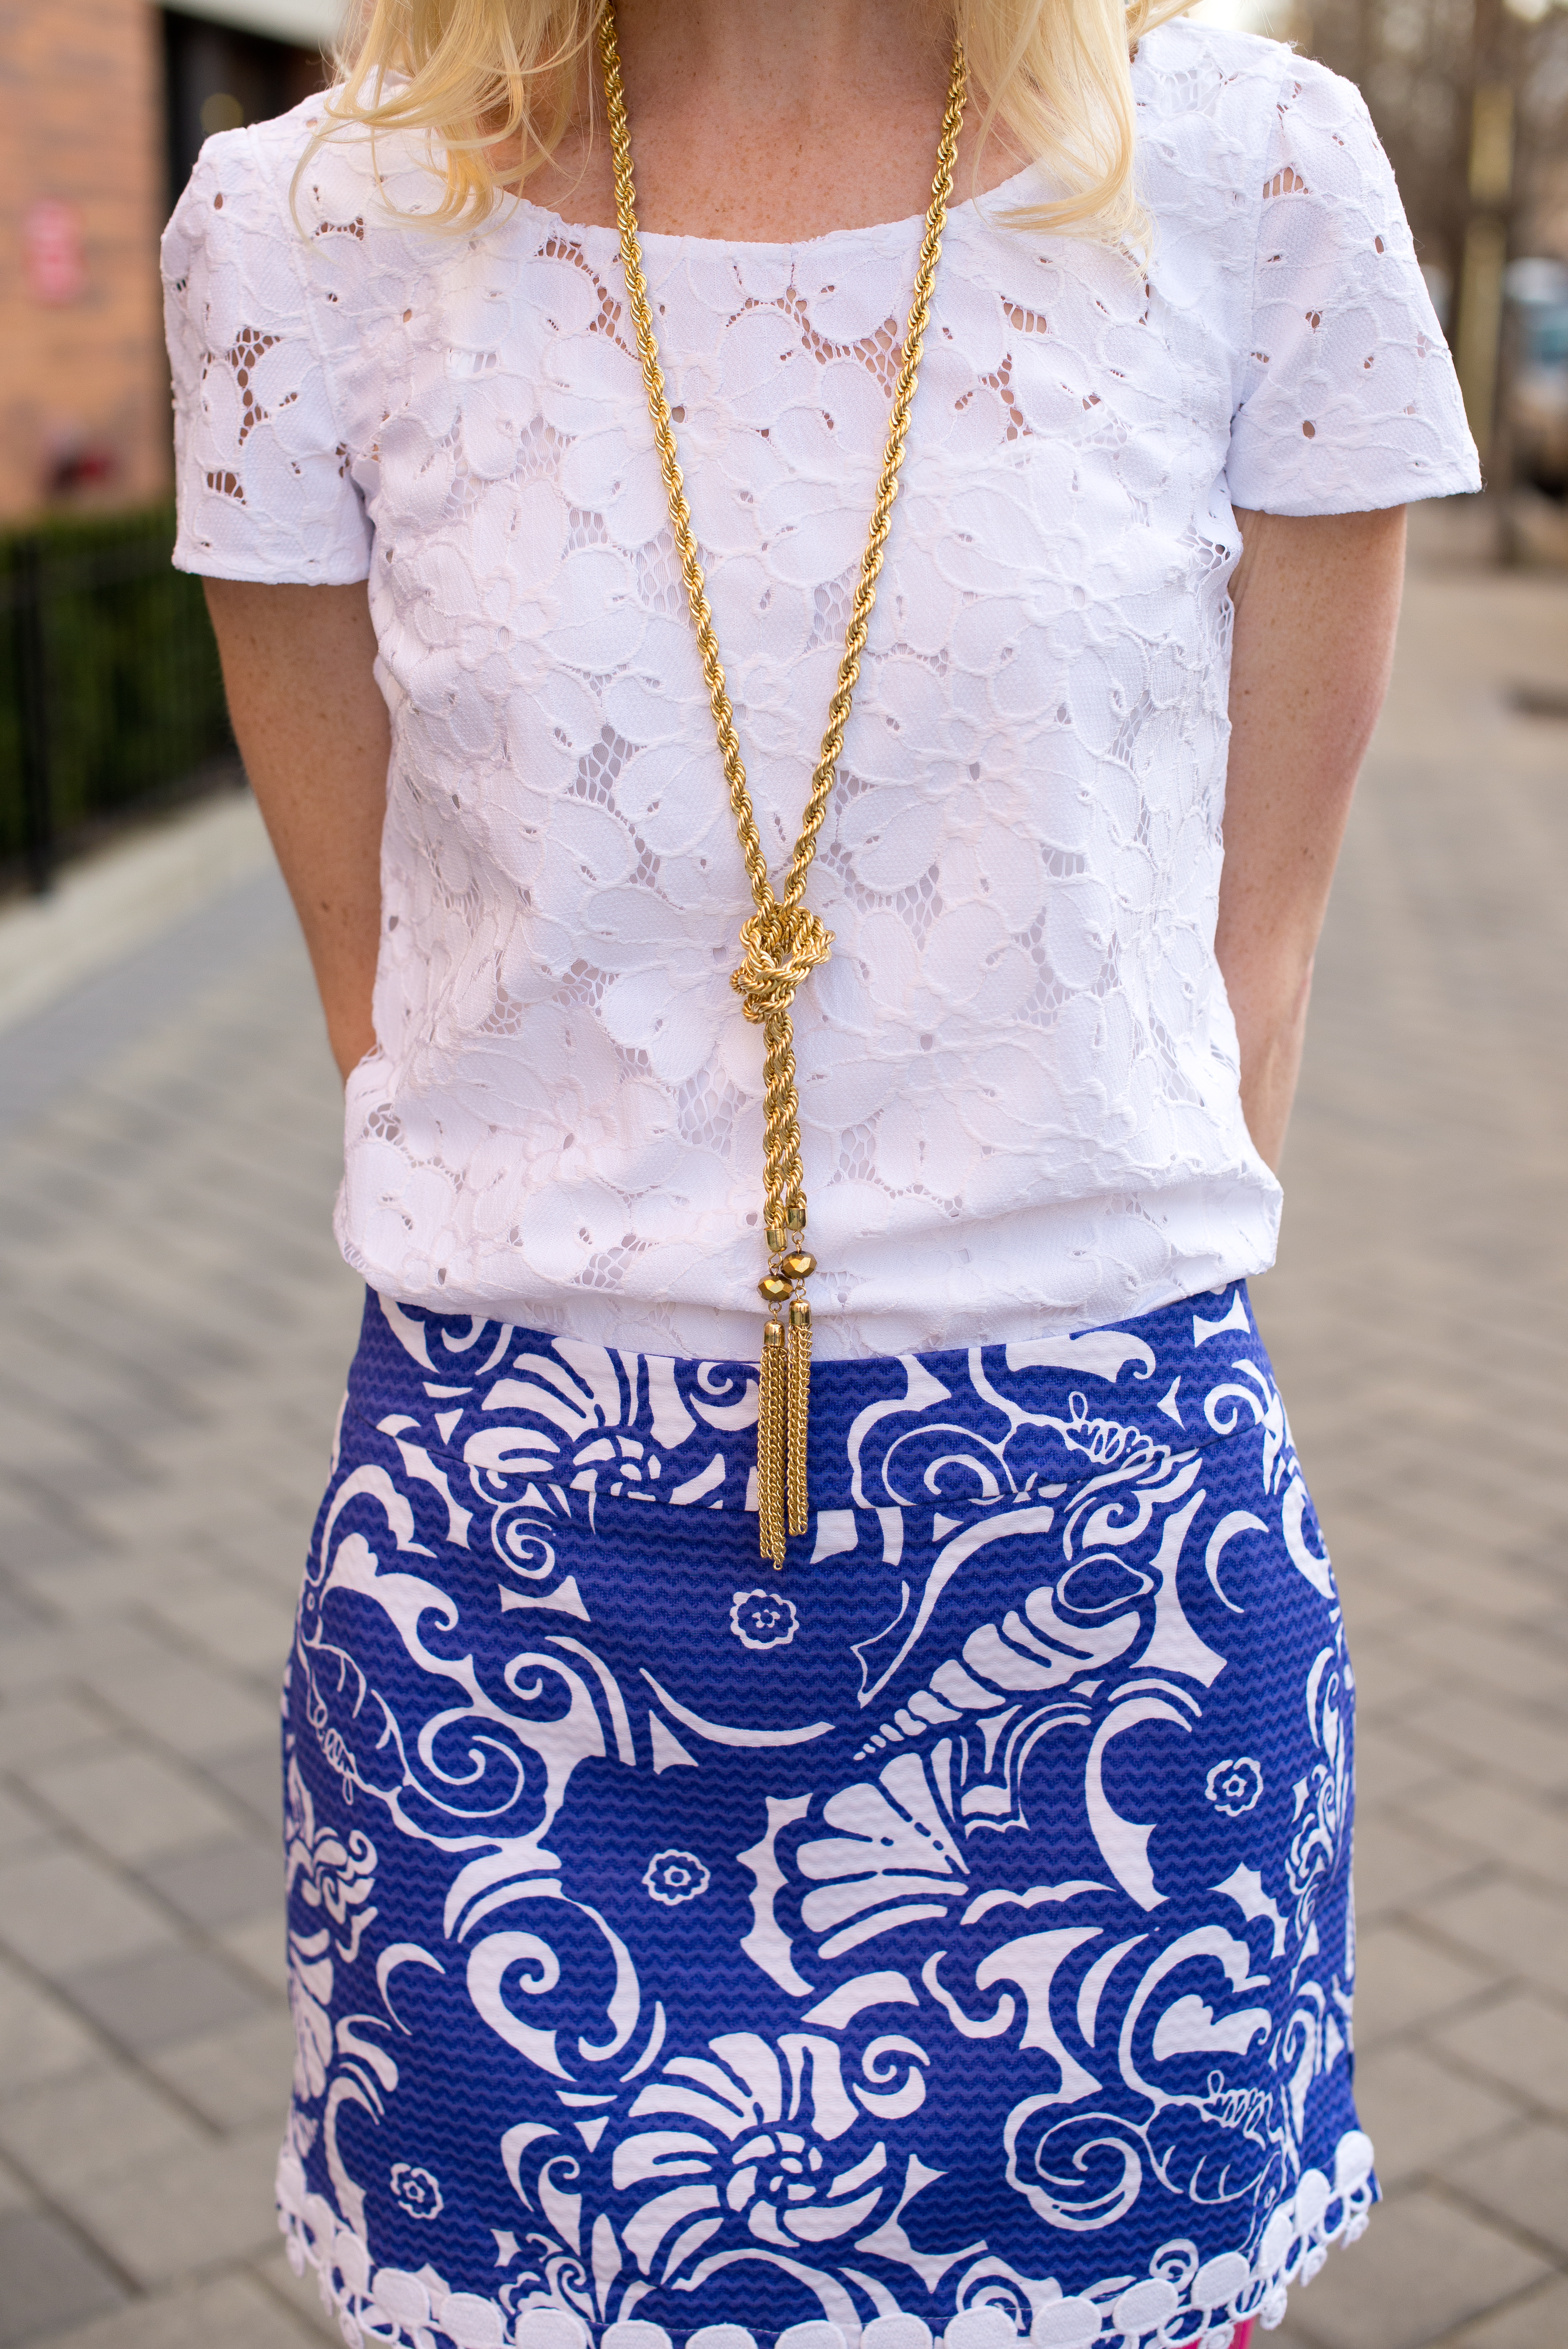 Lilly Pulitzer Kelly in the City 052